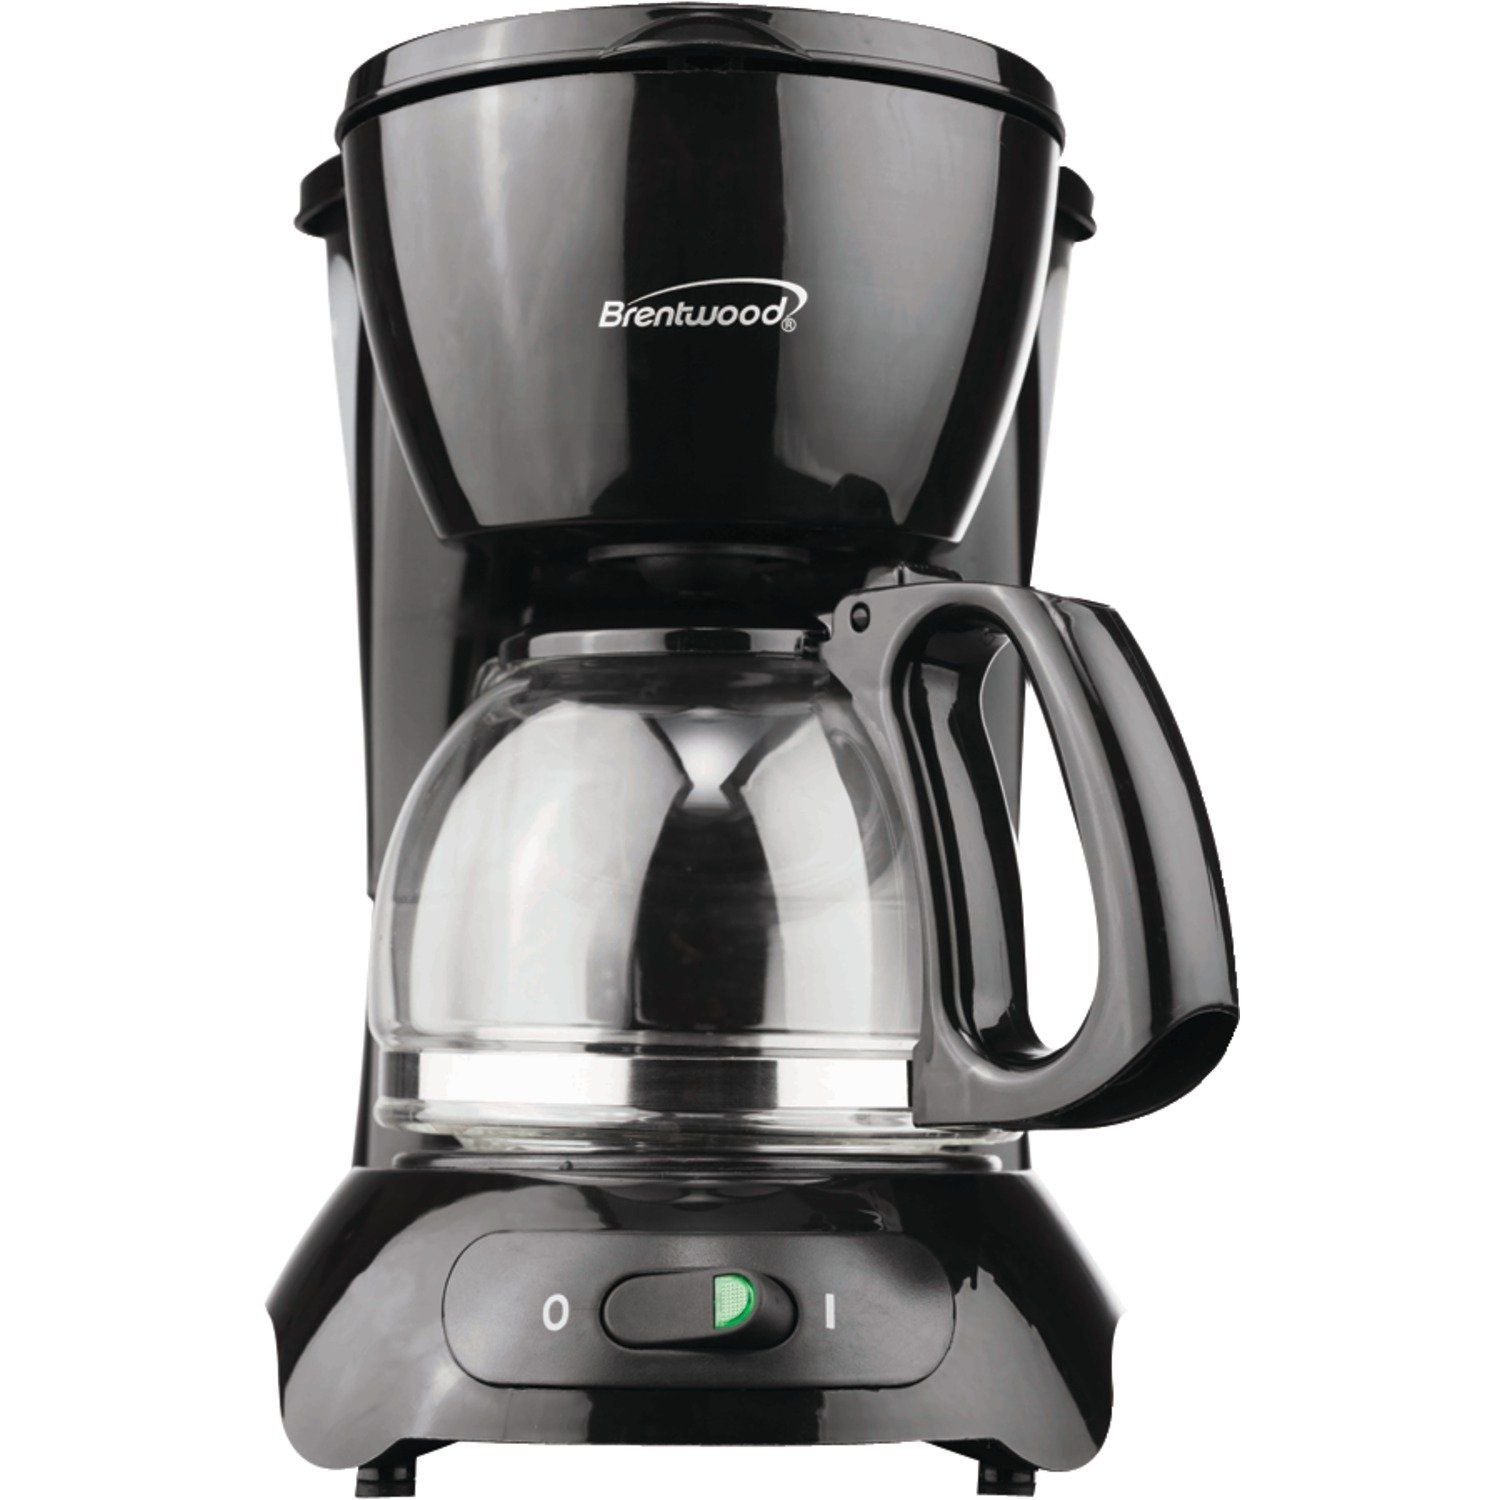 Brentwood TS214 4Cup Coffee Maker * Check out this great